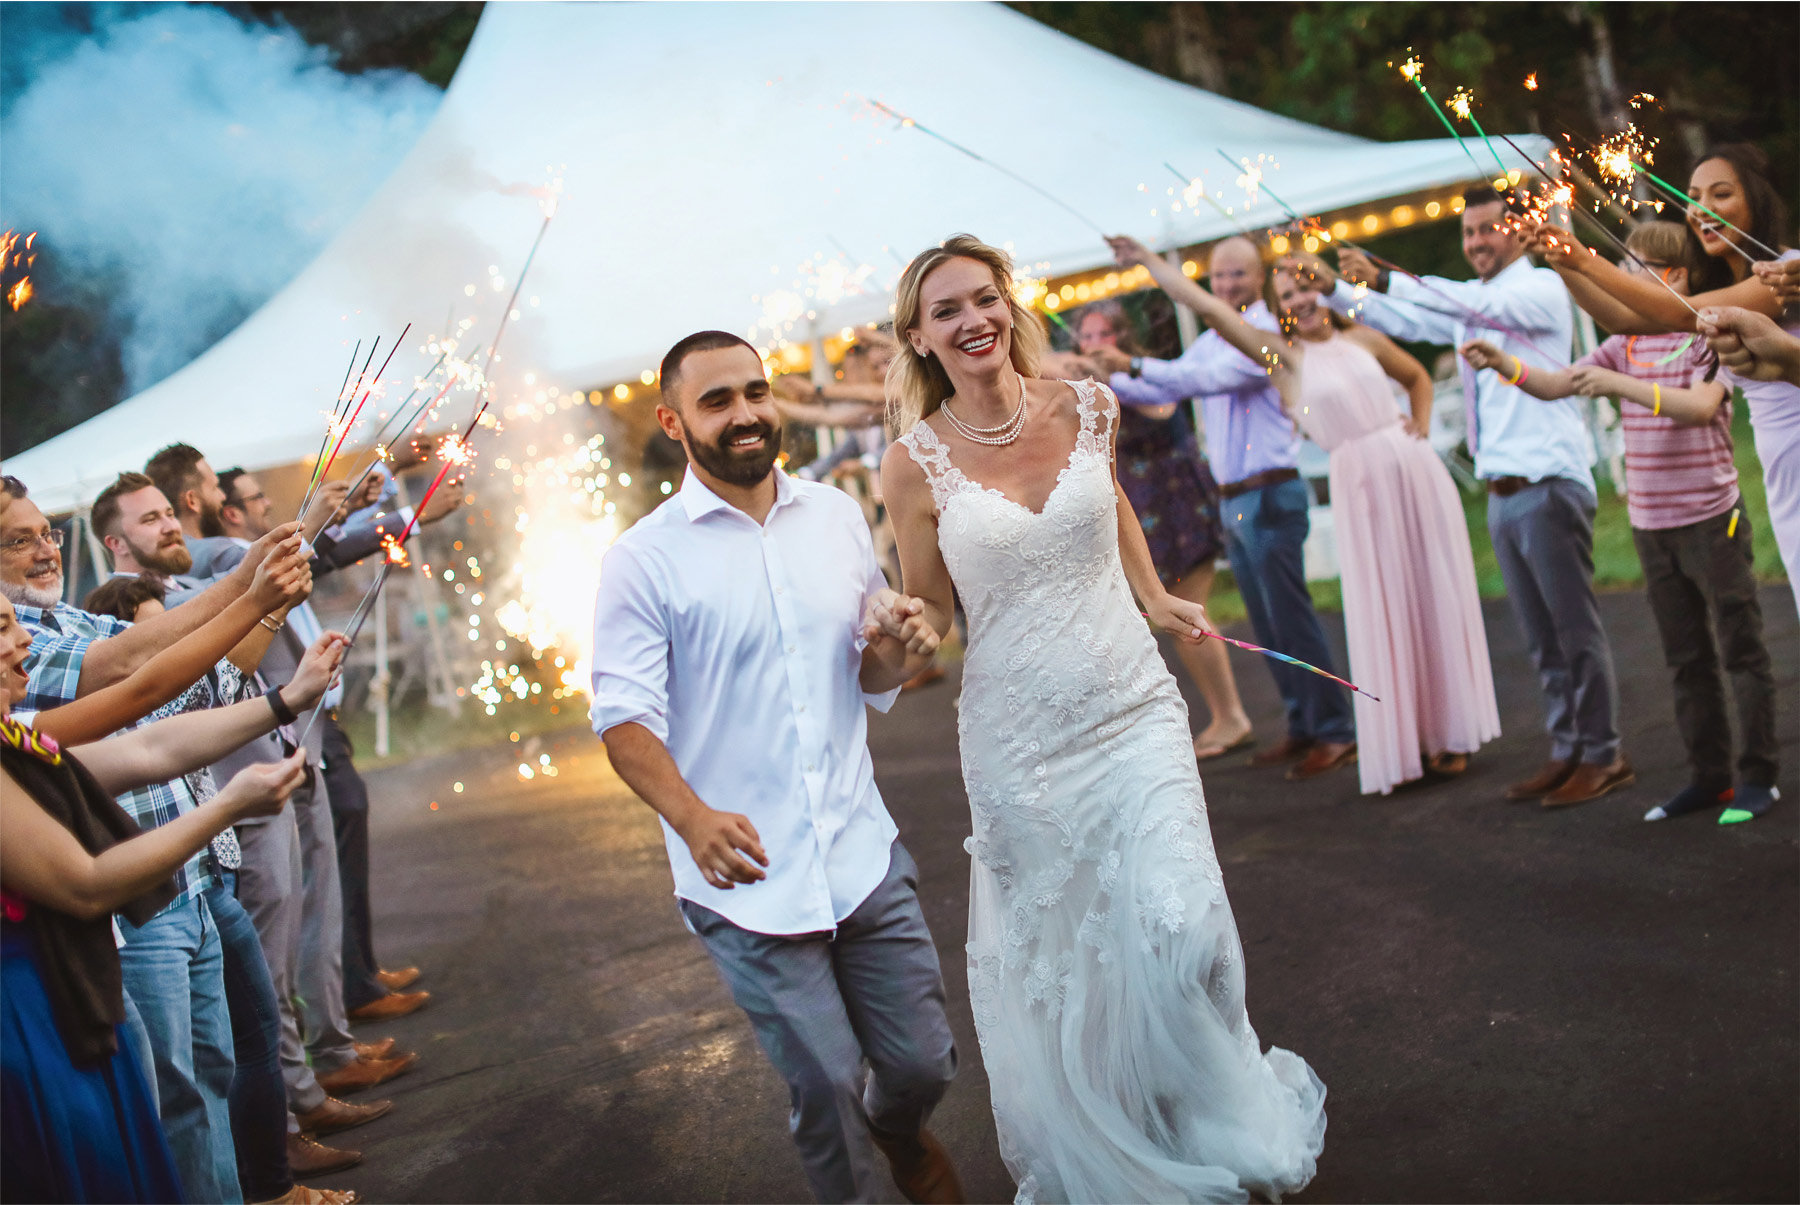 22-Ely-Minnesota-North-Wedding-by-Andrew-Vick-Photography-Sparklers-Send-Off-Bride-Groom-Katie-and-Joe.jpg